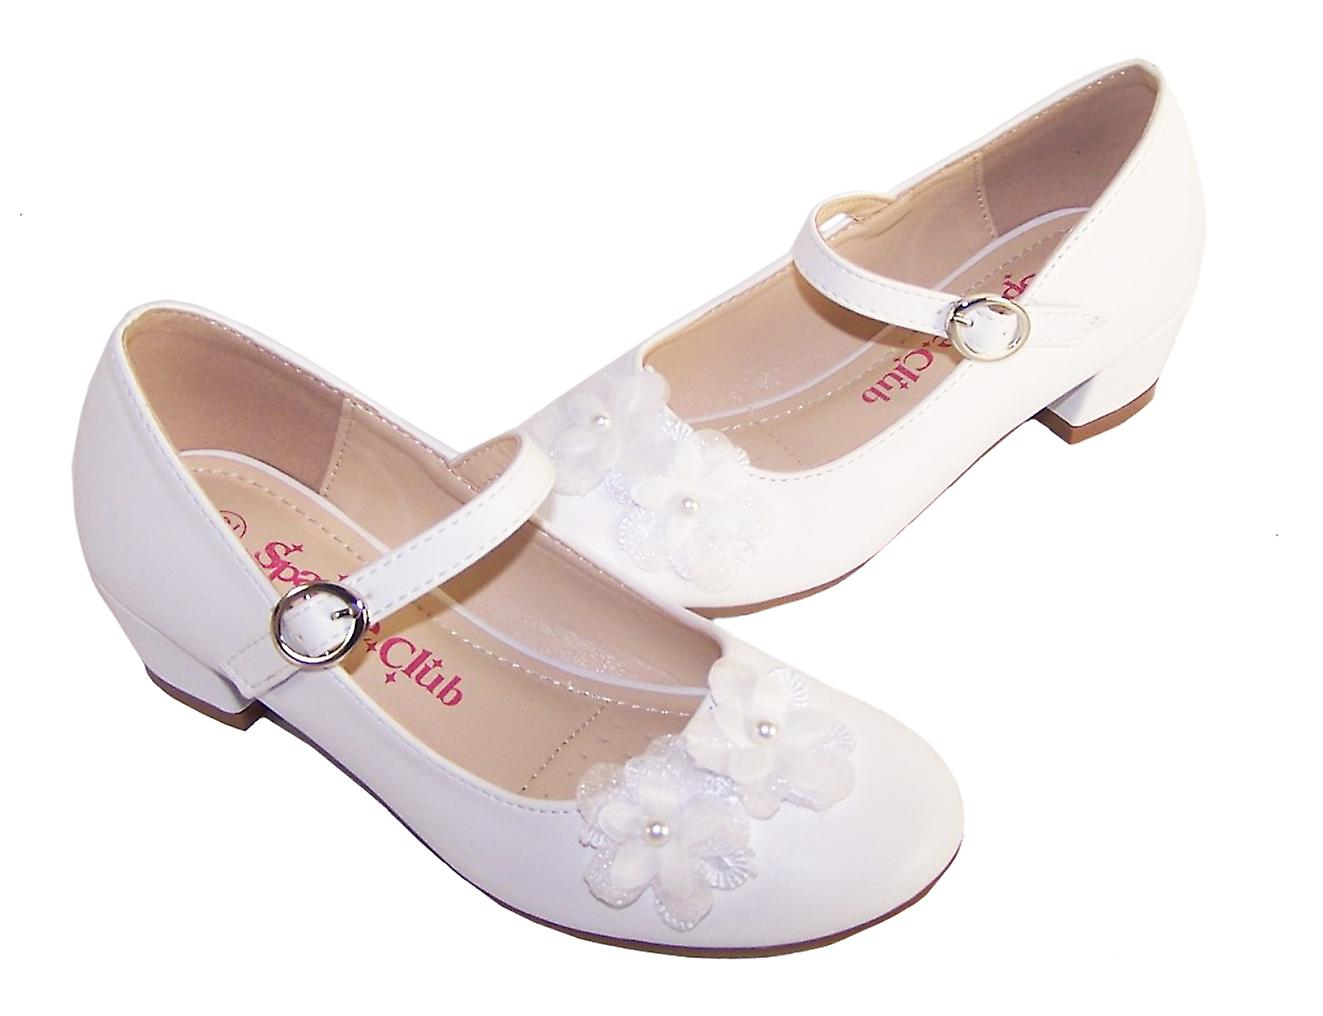 Girls white low heeled bridesmaid shoes